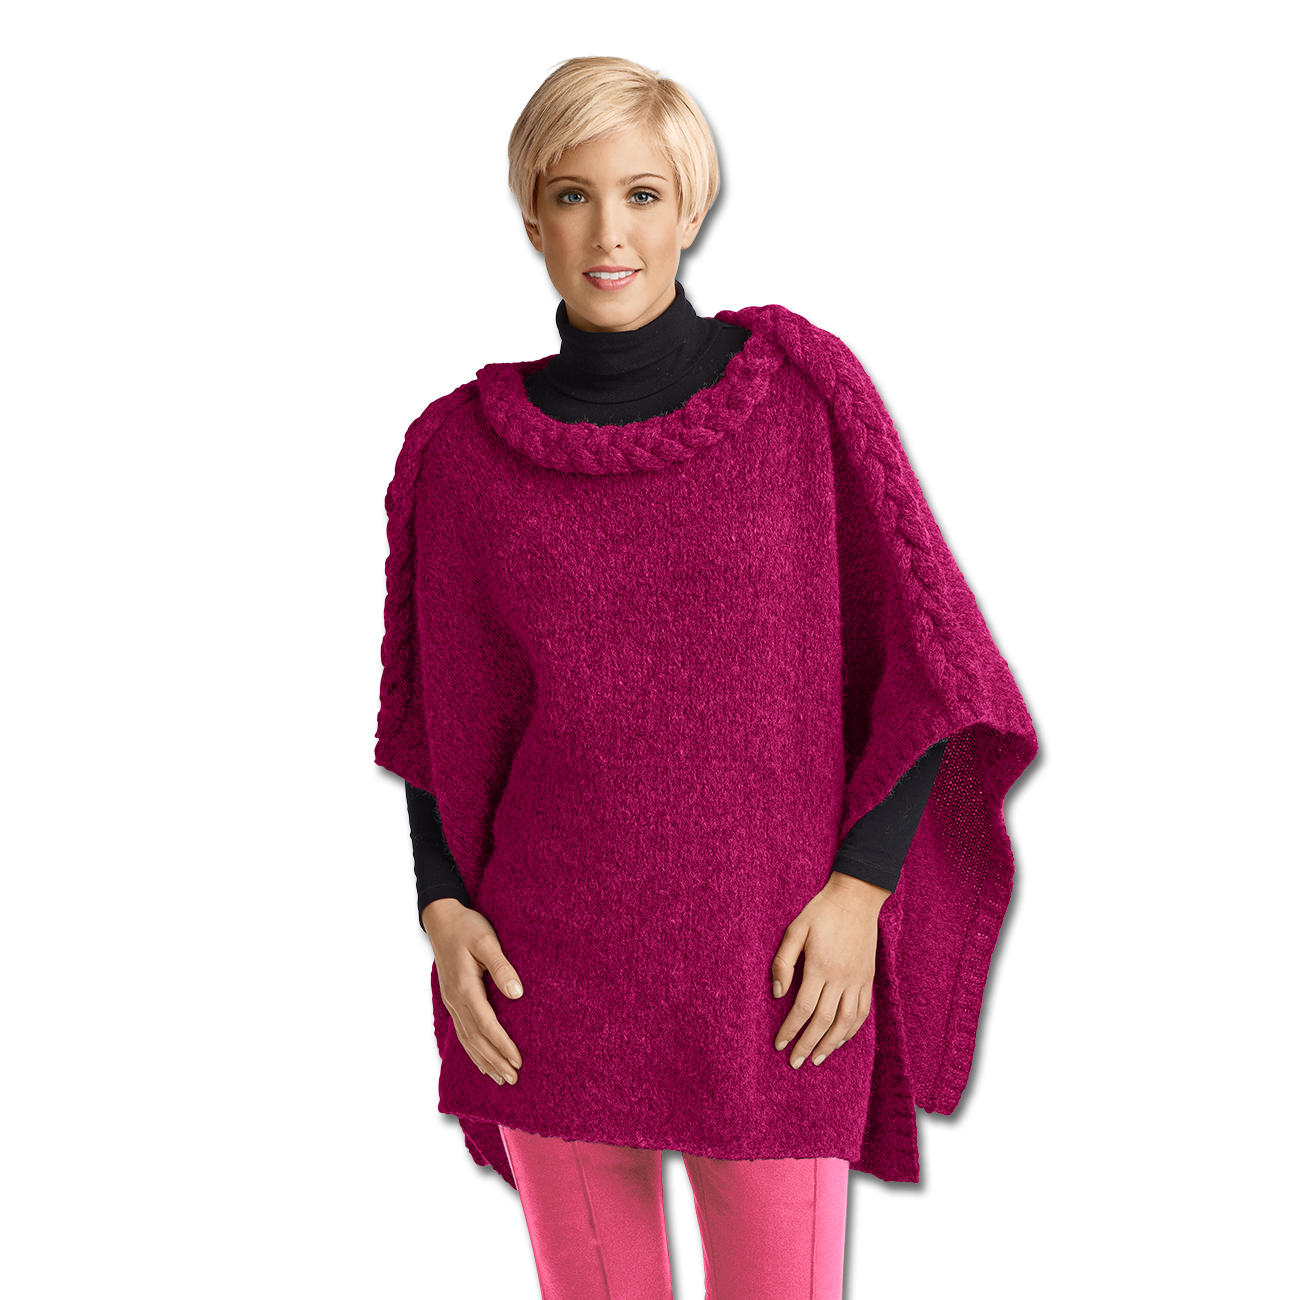 Modell 129 4 poncho aus fluffetto von junghans wolle 2 - Junghanns wolle ...